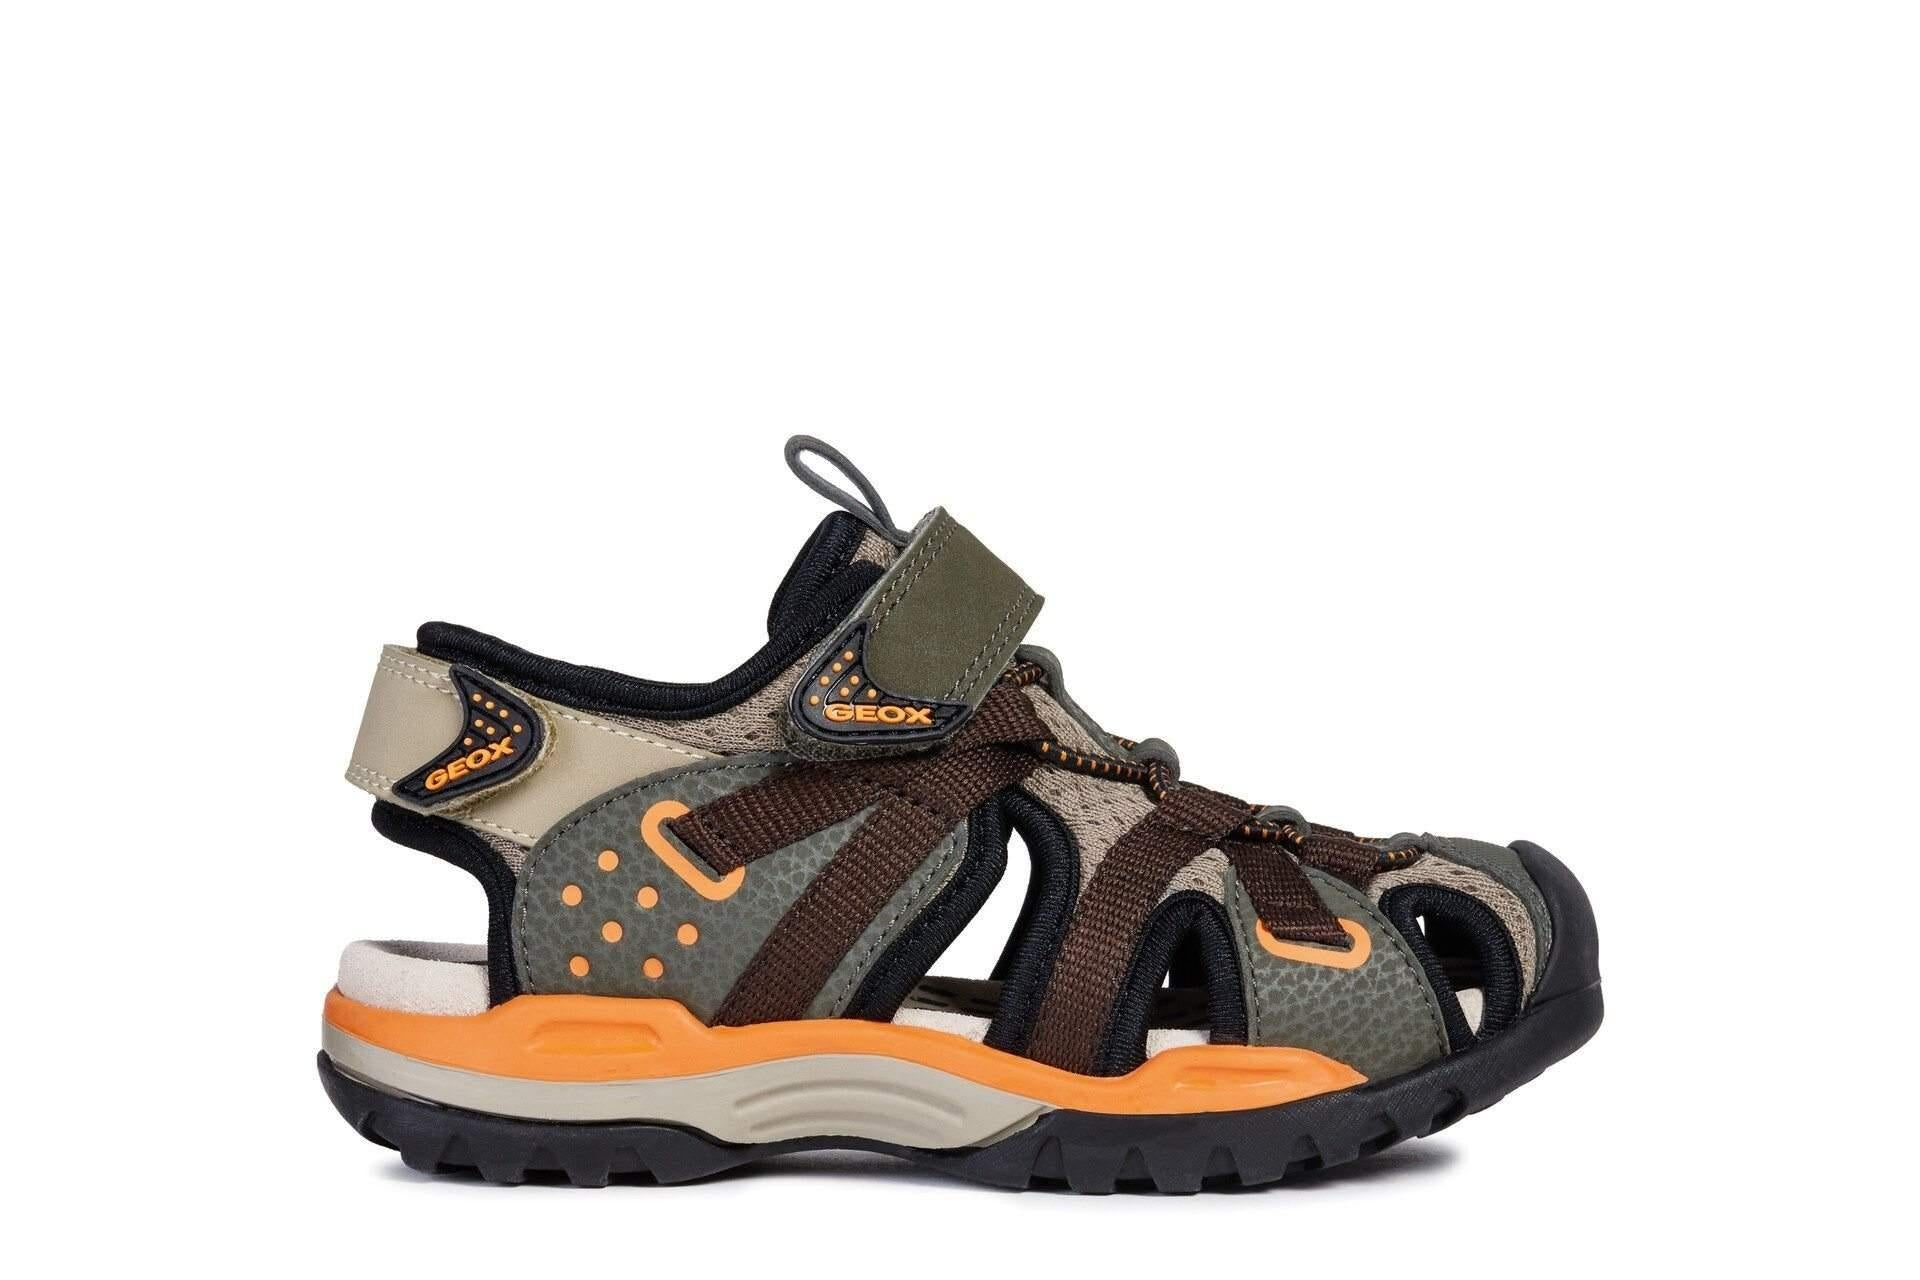 Geox BOREALIS Boys Water Friendly Sandals / Little Kids / Youth - ShoeKid Canada